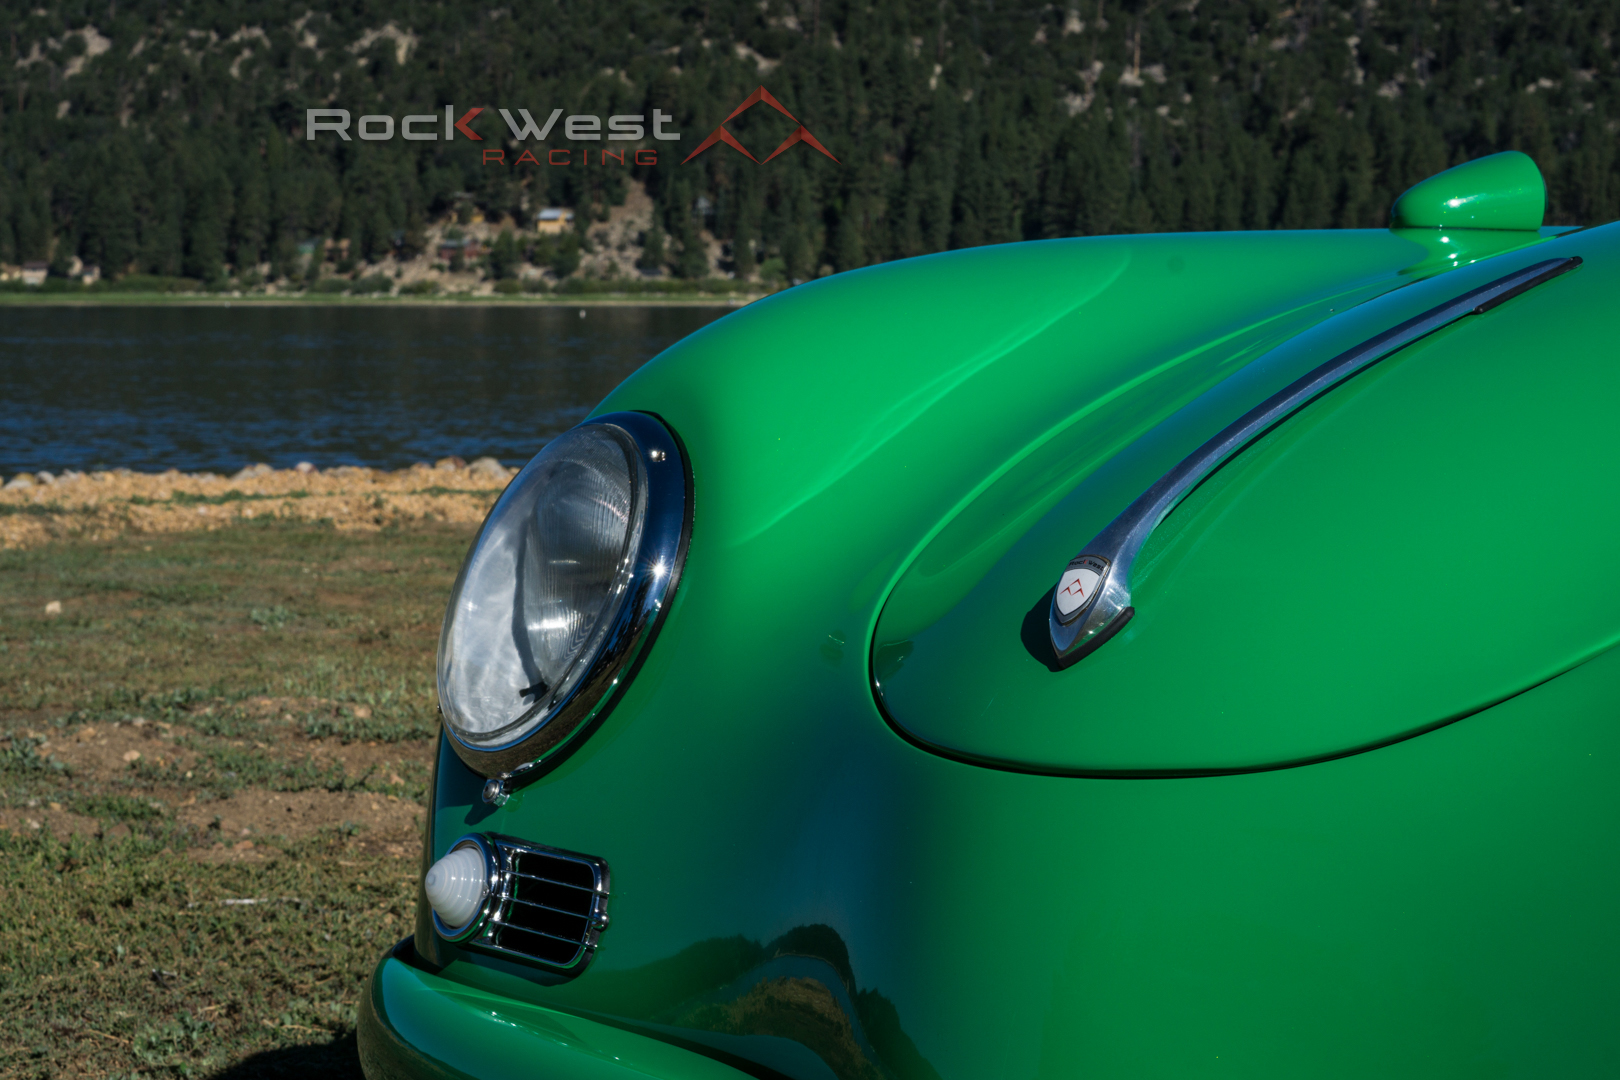 RW Speedster Electric - Front Detail (1920 x 1080 pixels)